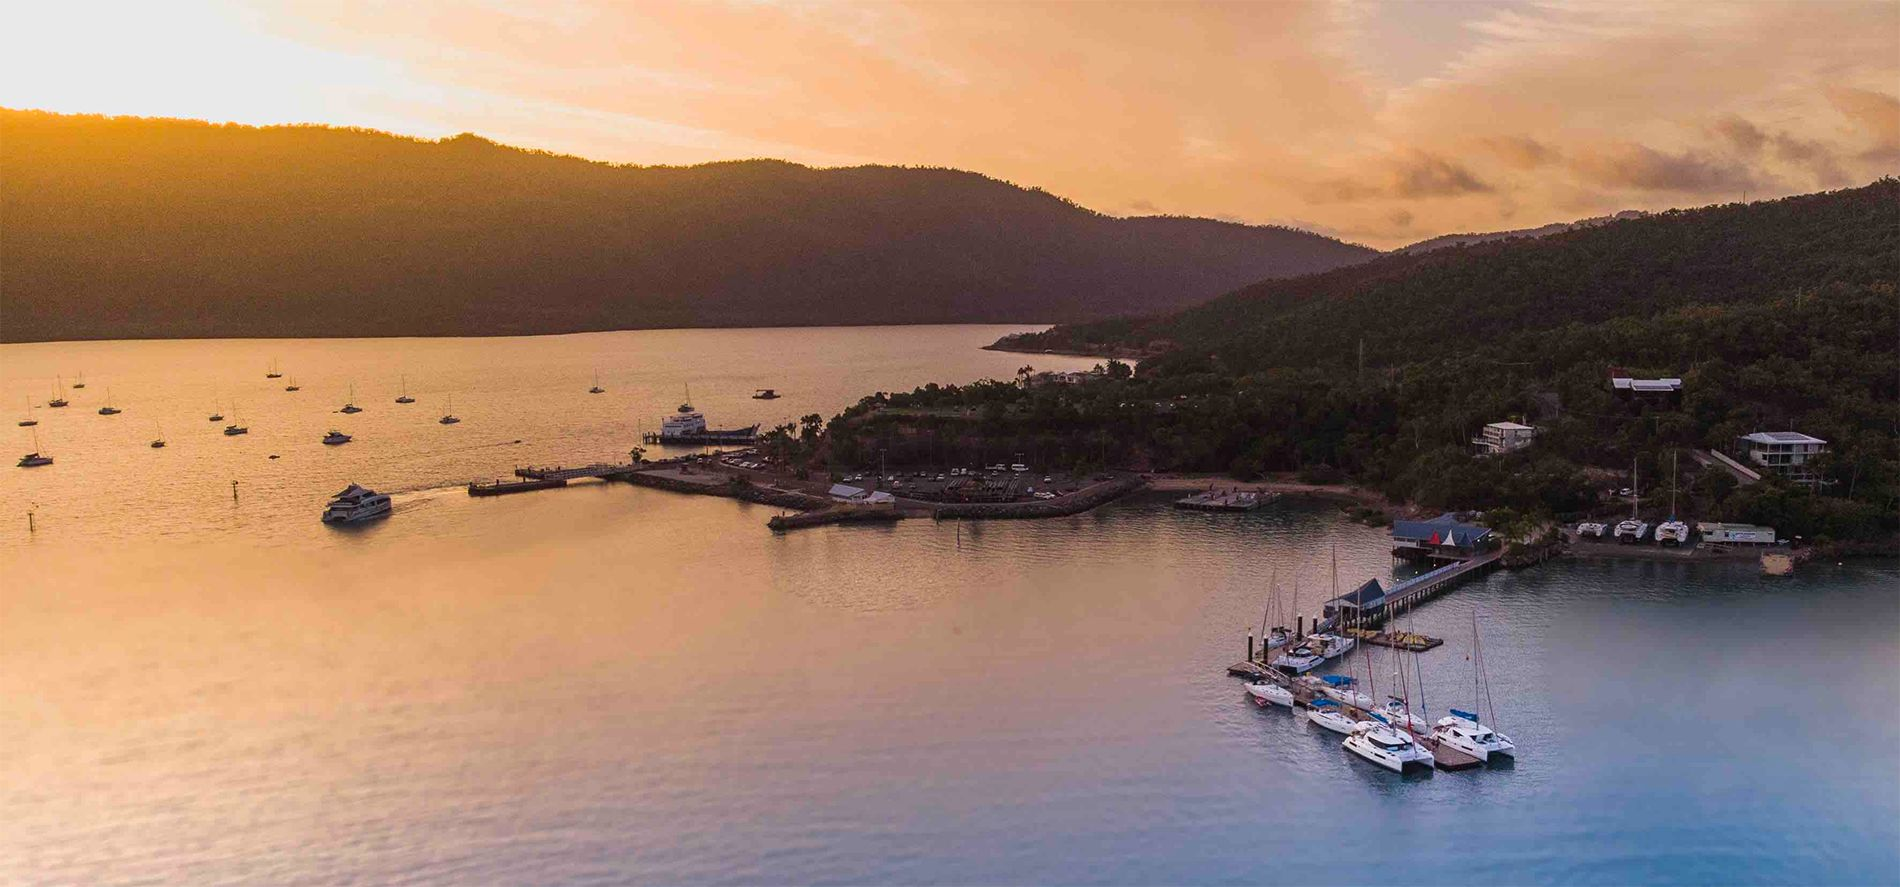 Shute Harbour Boat Hire Airlie Beach